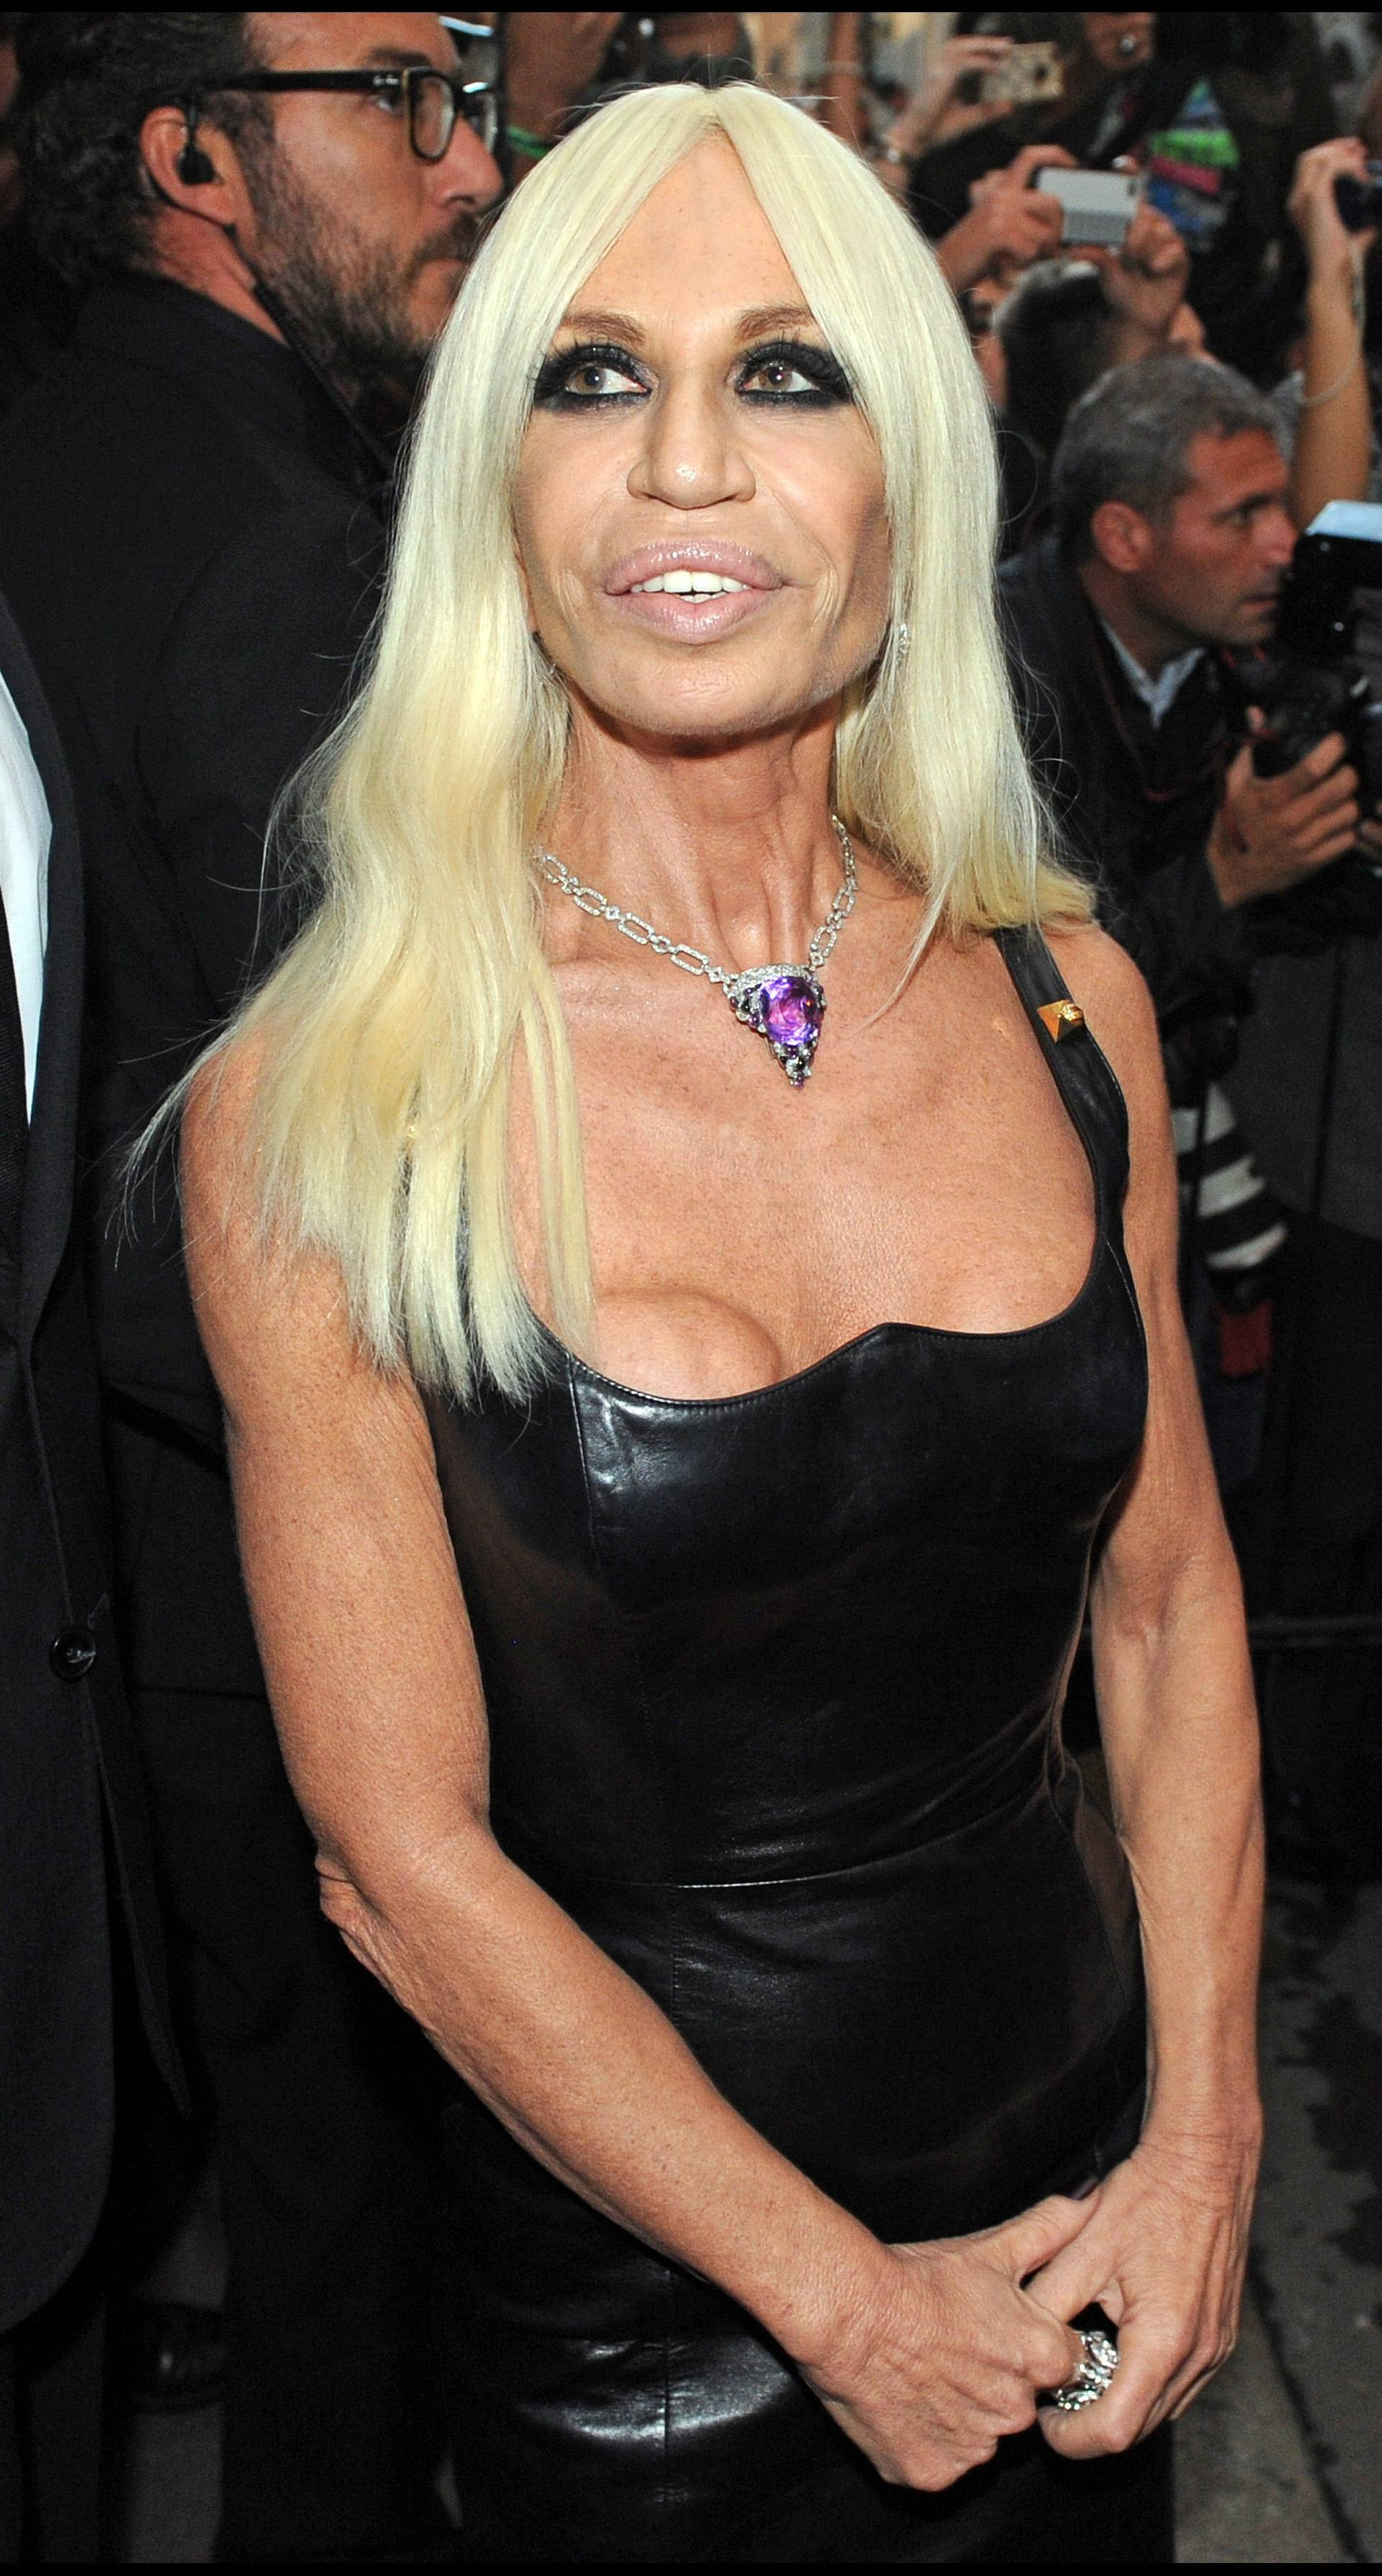 Donatella Versace posed in Milan